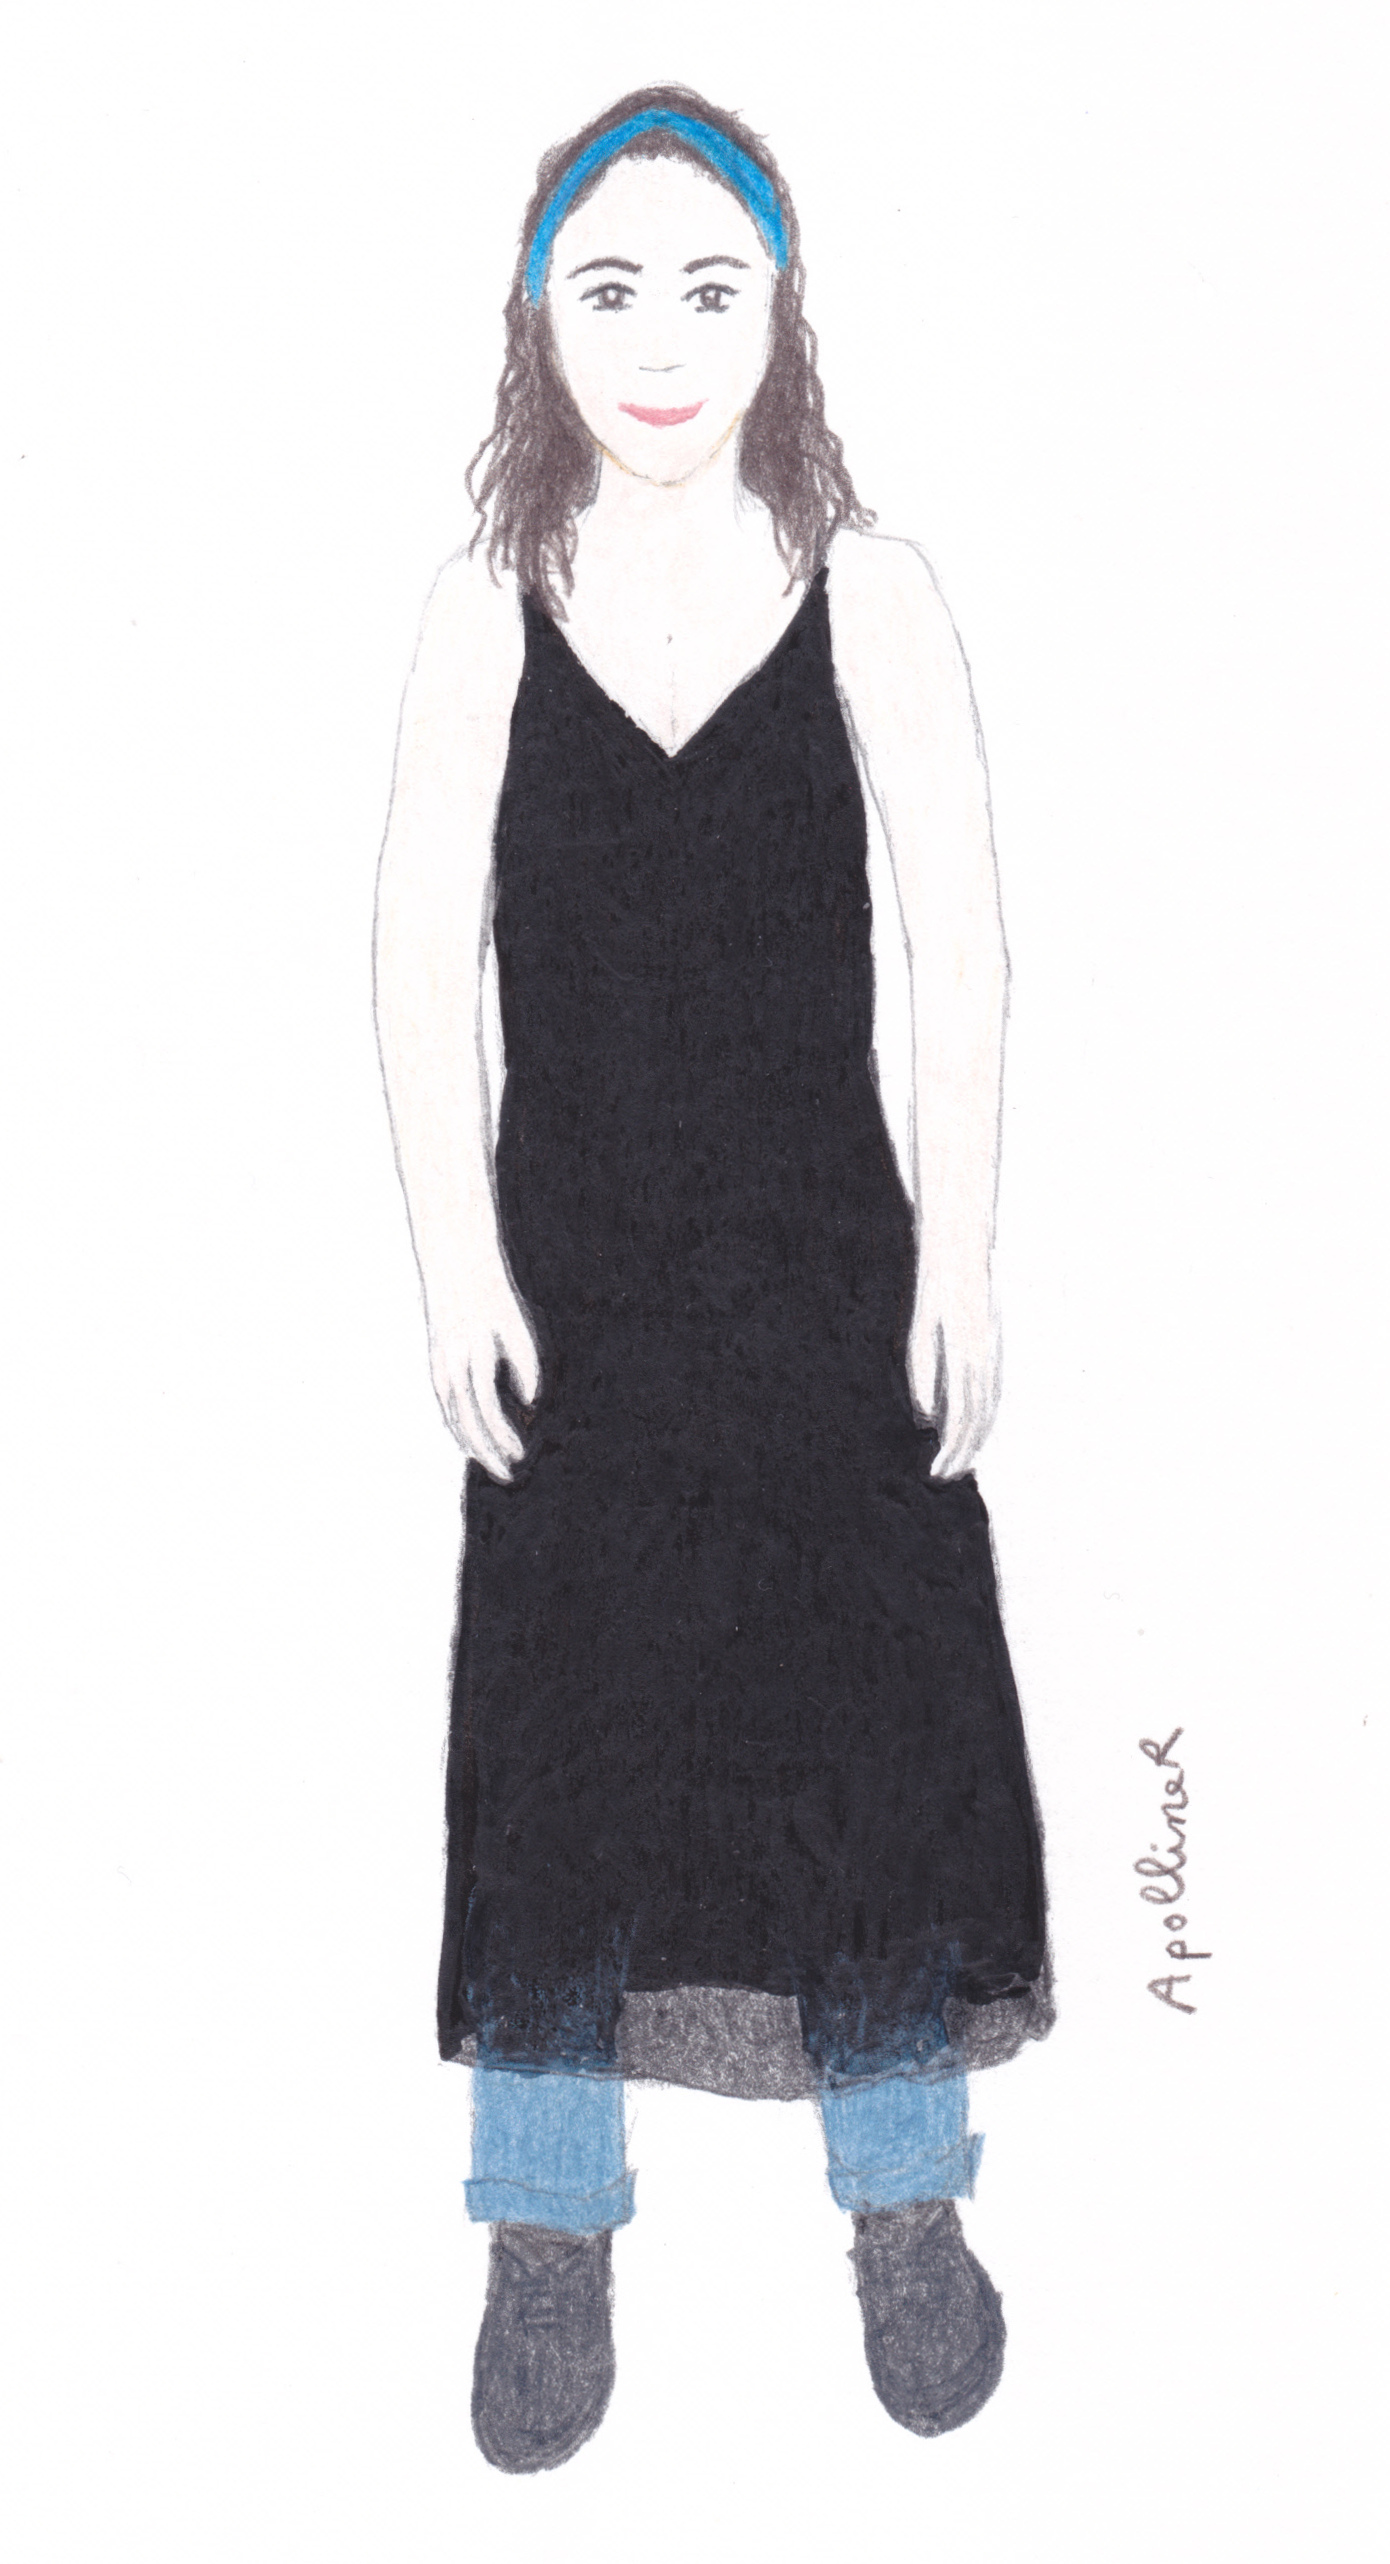 drawing of Tammy, coordinator of Fashion Revolution Malta